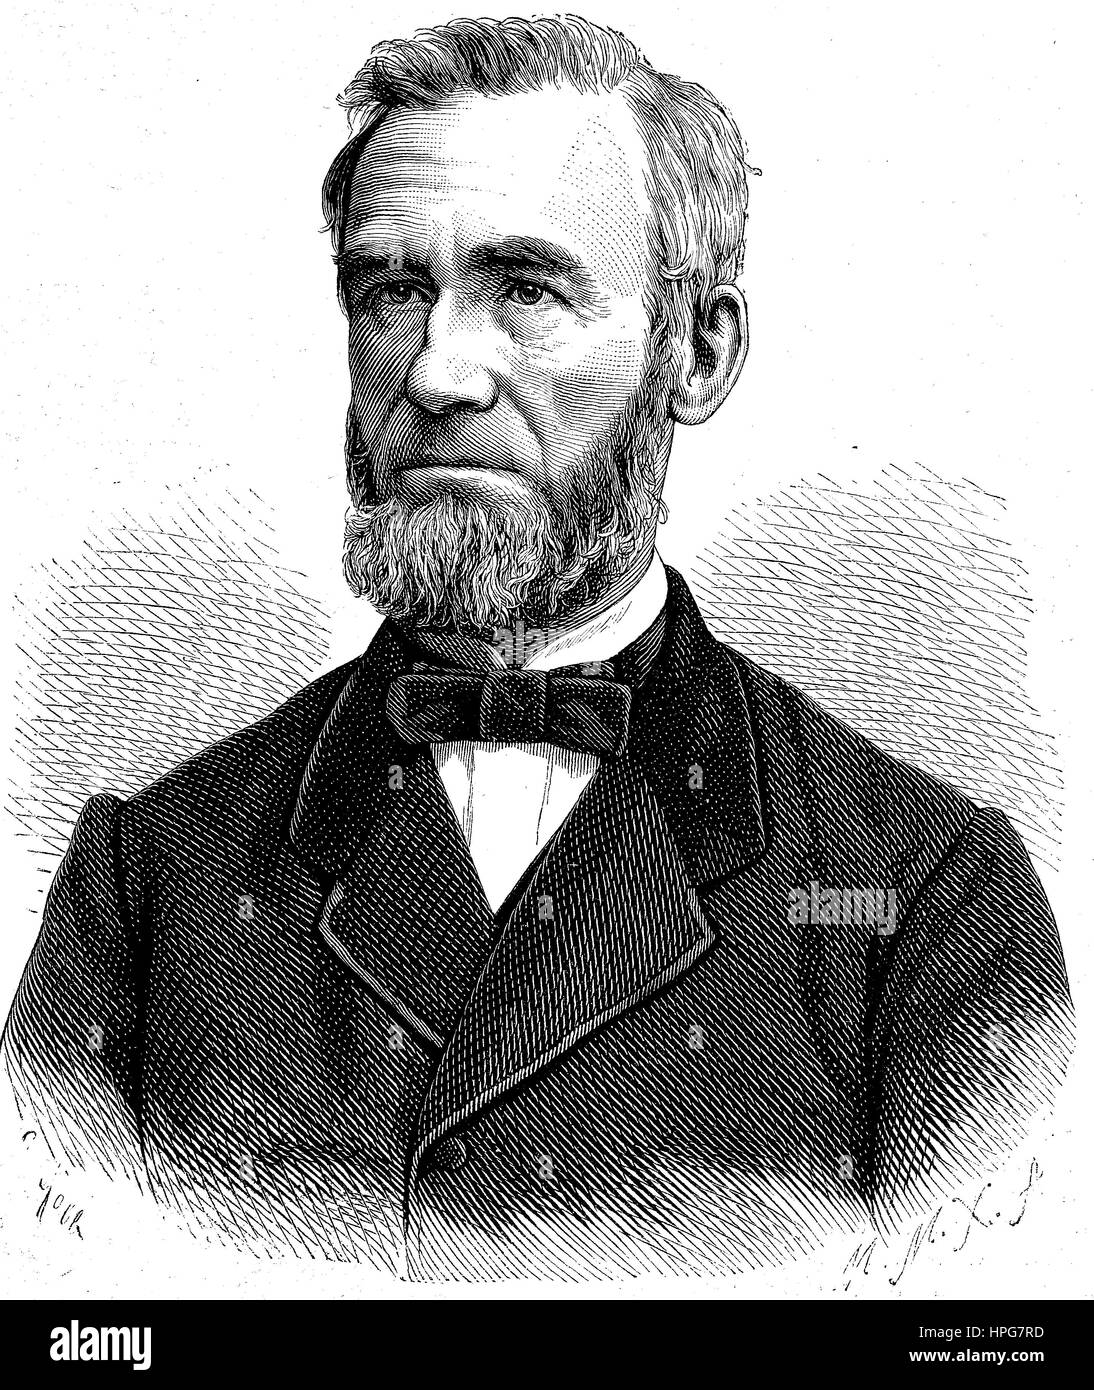 Bernhard Windscheid, 1817 - 1892, was a German jurist and a member of the pandectistic school of law thought, digital - Stock Image